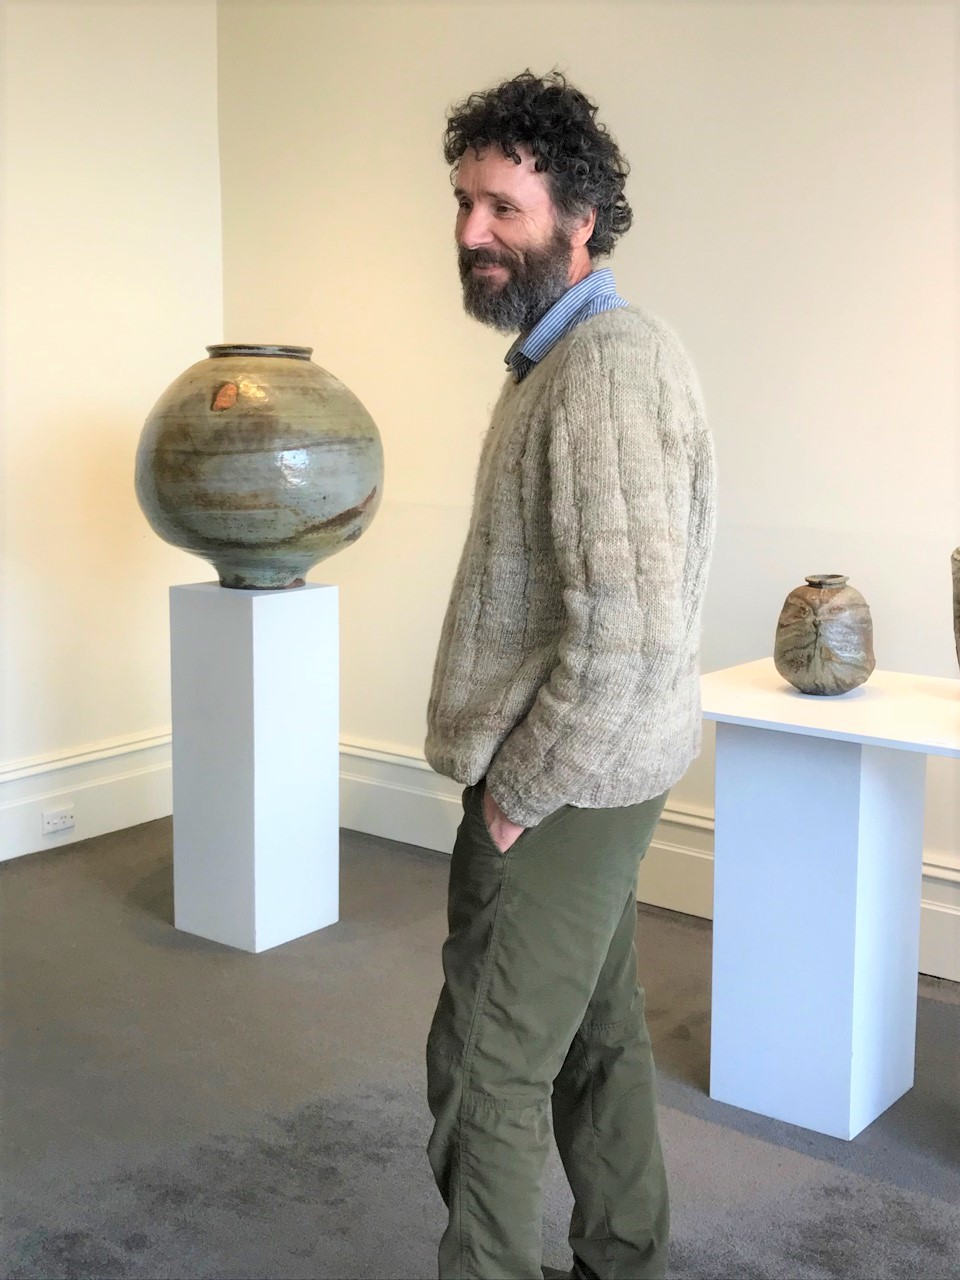 Kirk Winter & Yuri Wiedenhofer Exhibition Opening, June 2018. Yuri with Kirk's works in the background.